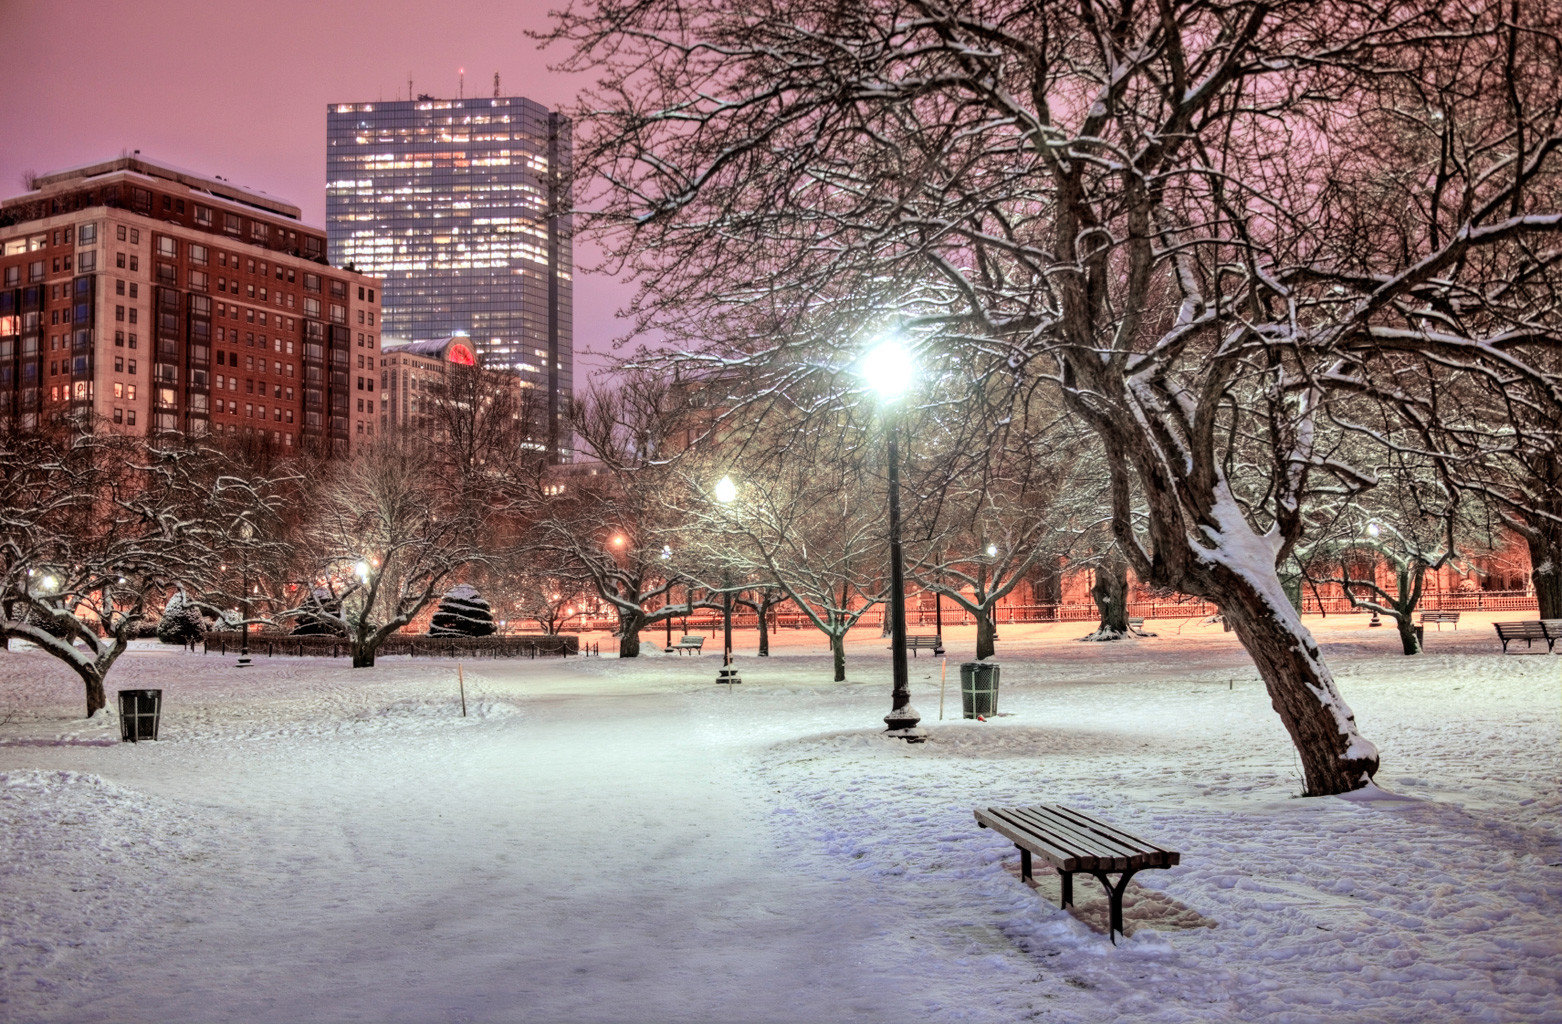 City Cultural Exterior Grounds Landmarks Monuments Museums Nightlife Scenic views tree snow Winter weather park season sidewalk freezing night way morning evening